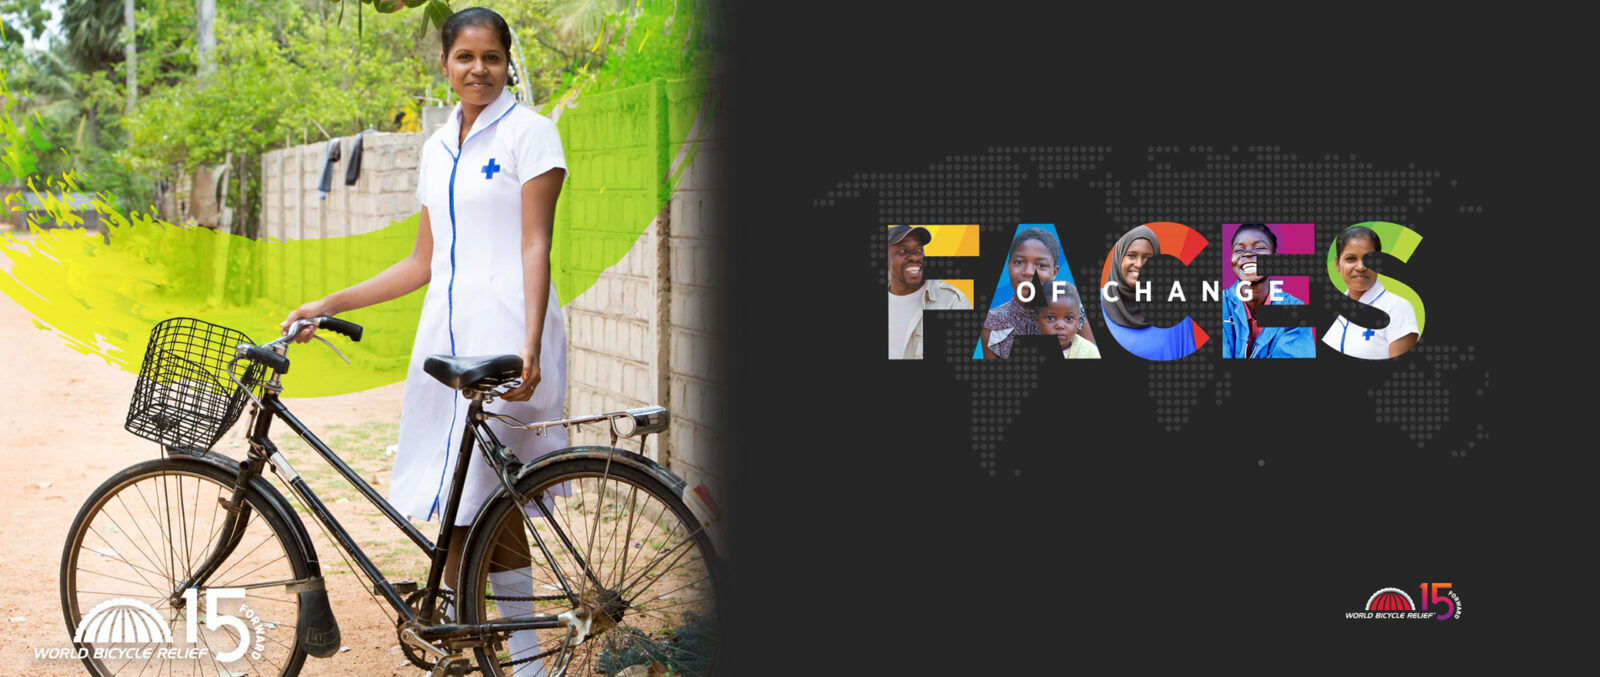 faces of change - Dilshani's story